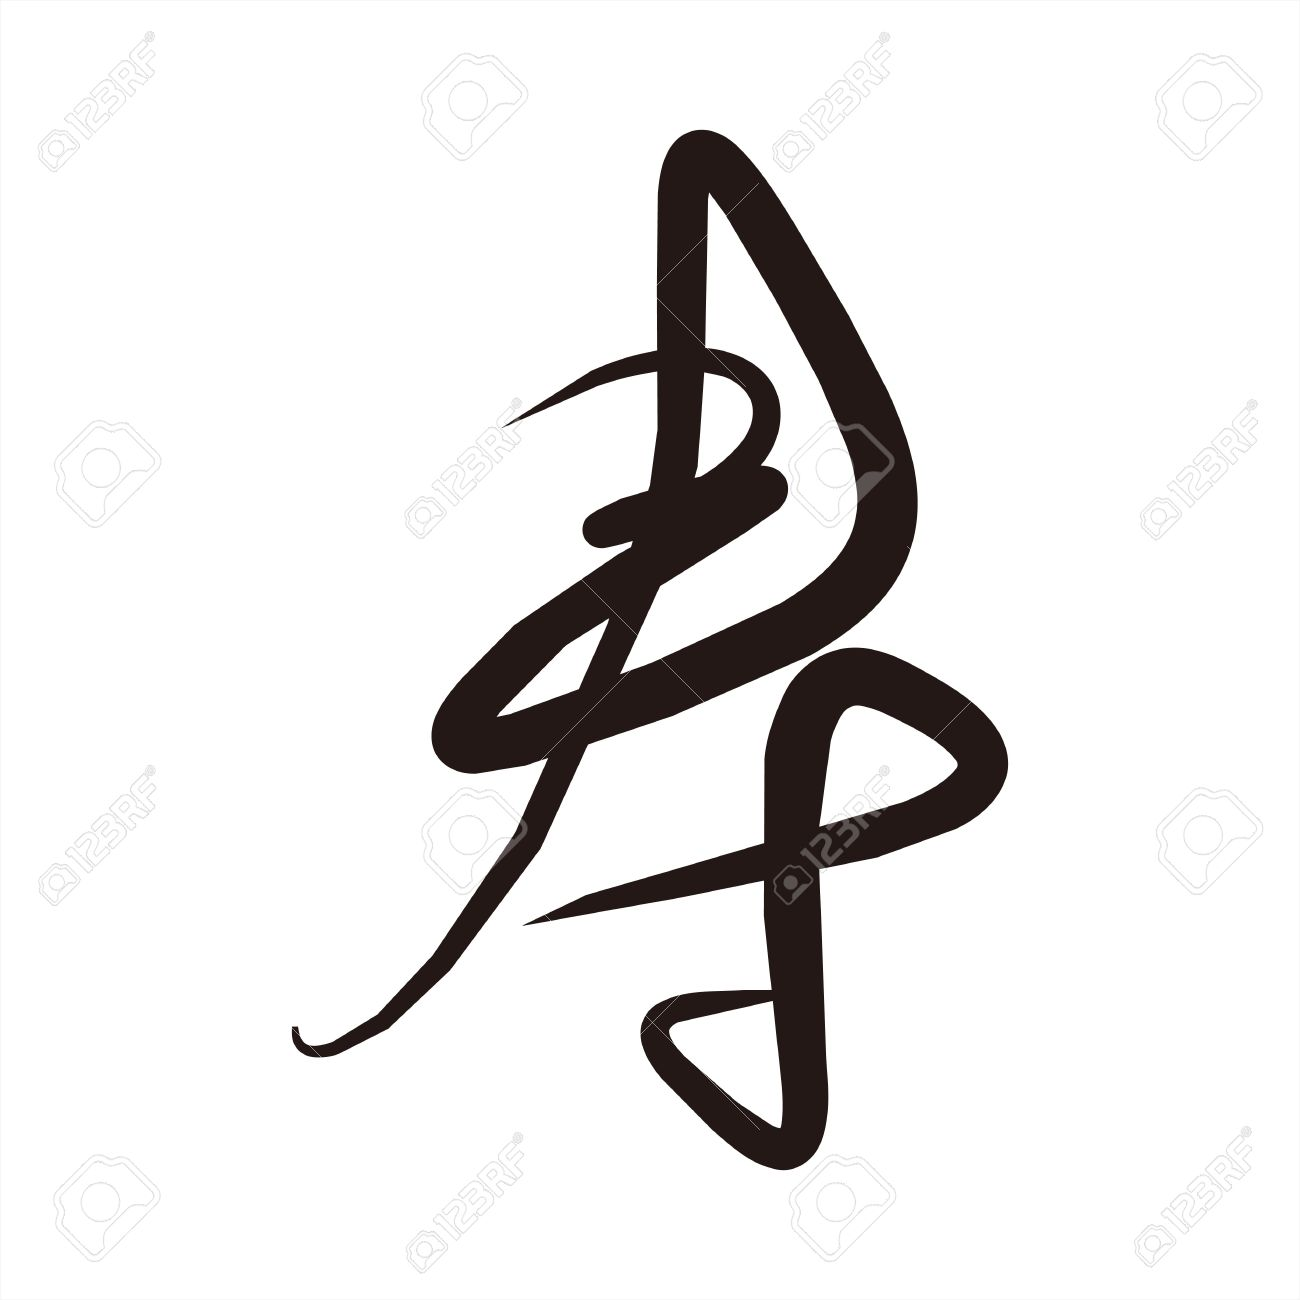 Chinese Character Shou For Longevity Royalty Free Cliparts